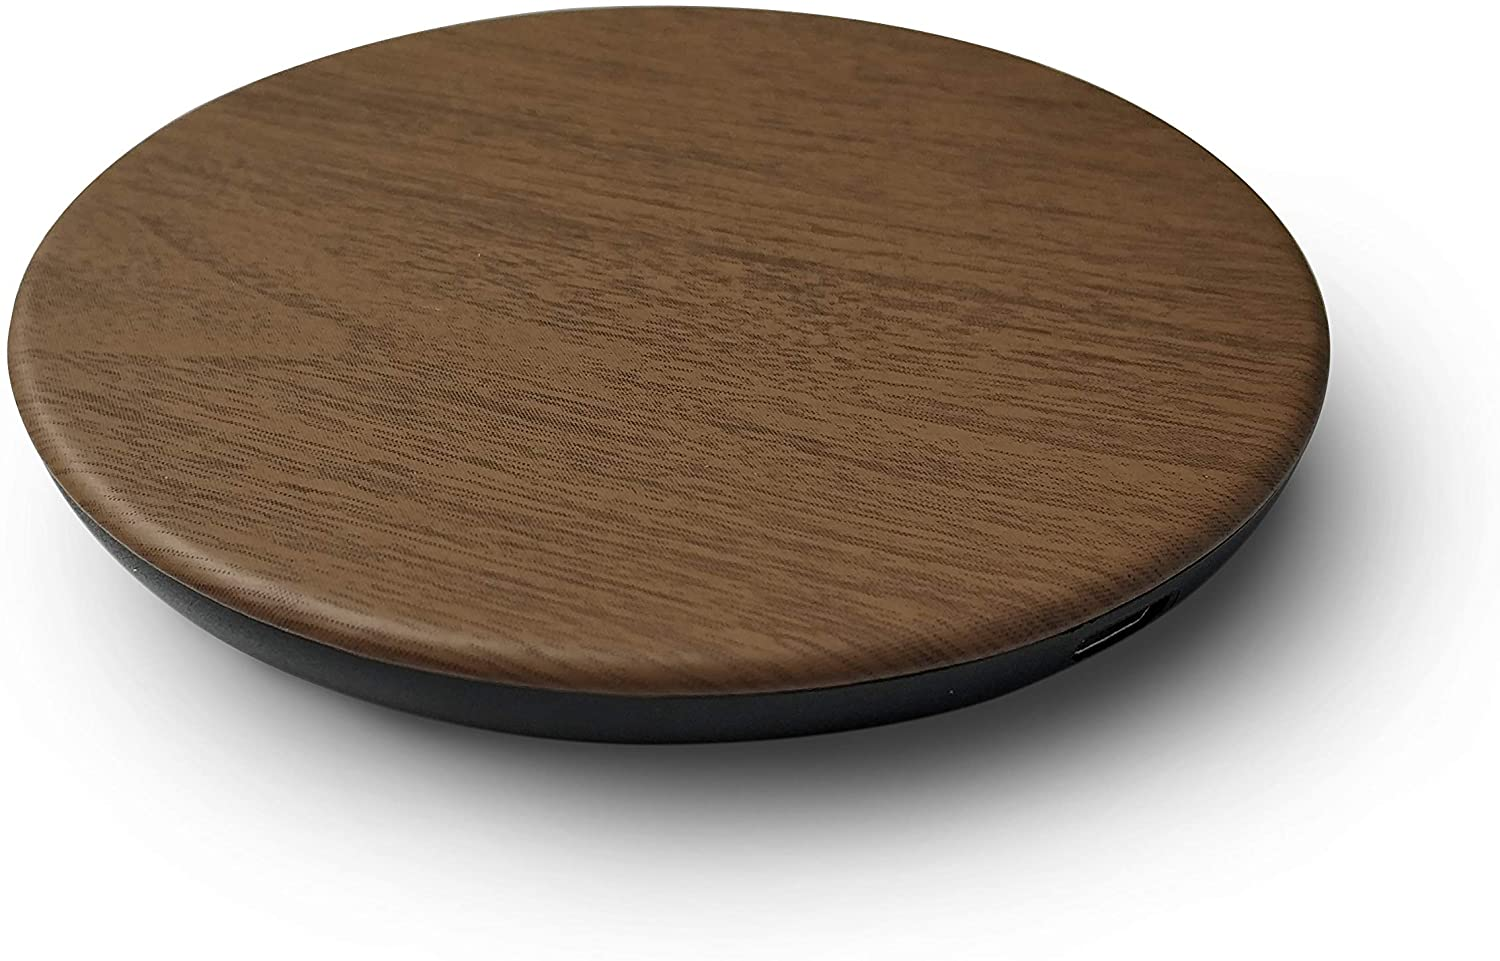 Wireless Charger Rubberized Wood Charging Pad by Reveal Shop- Qi Certified, Fast Charging- Compatible w/iPhone 11/11Pro/XS Max/XR/XS/X/8/8Plus, Galaxy S6 to S10 Models (No AC Adapter, Cable Included)